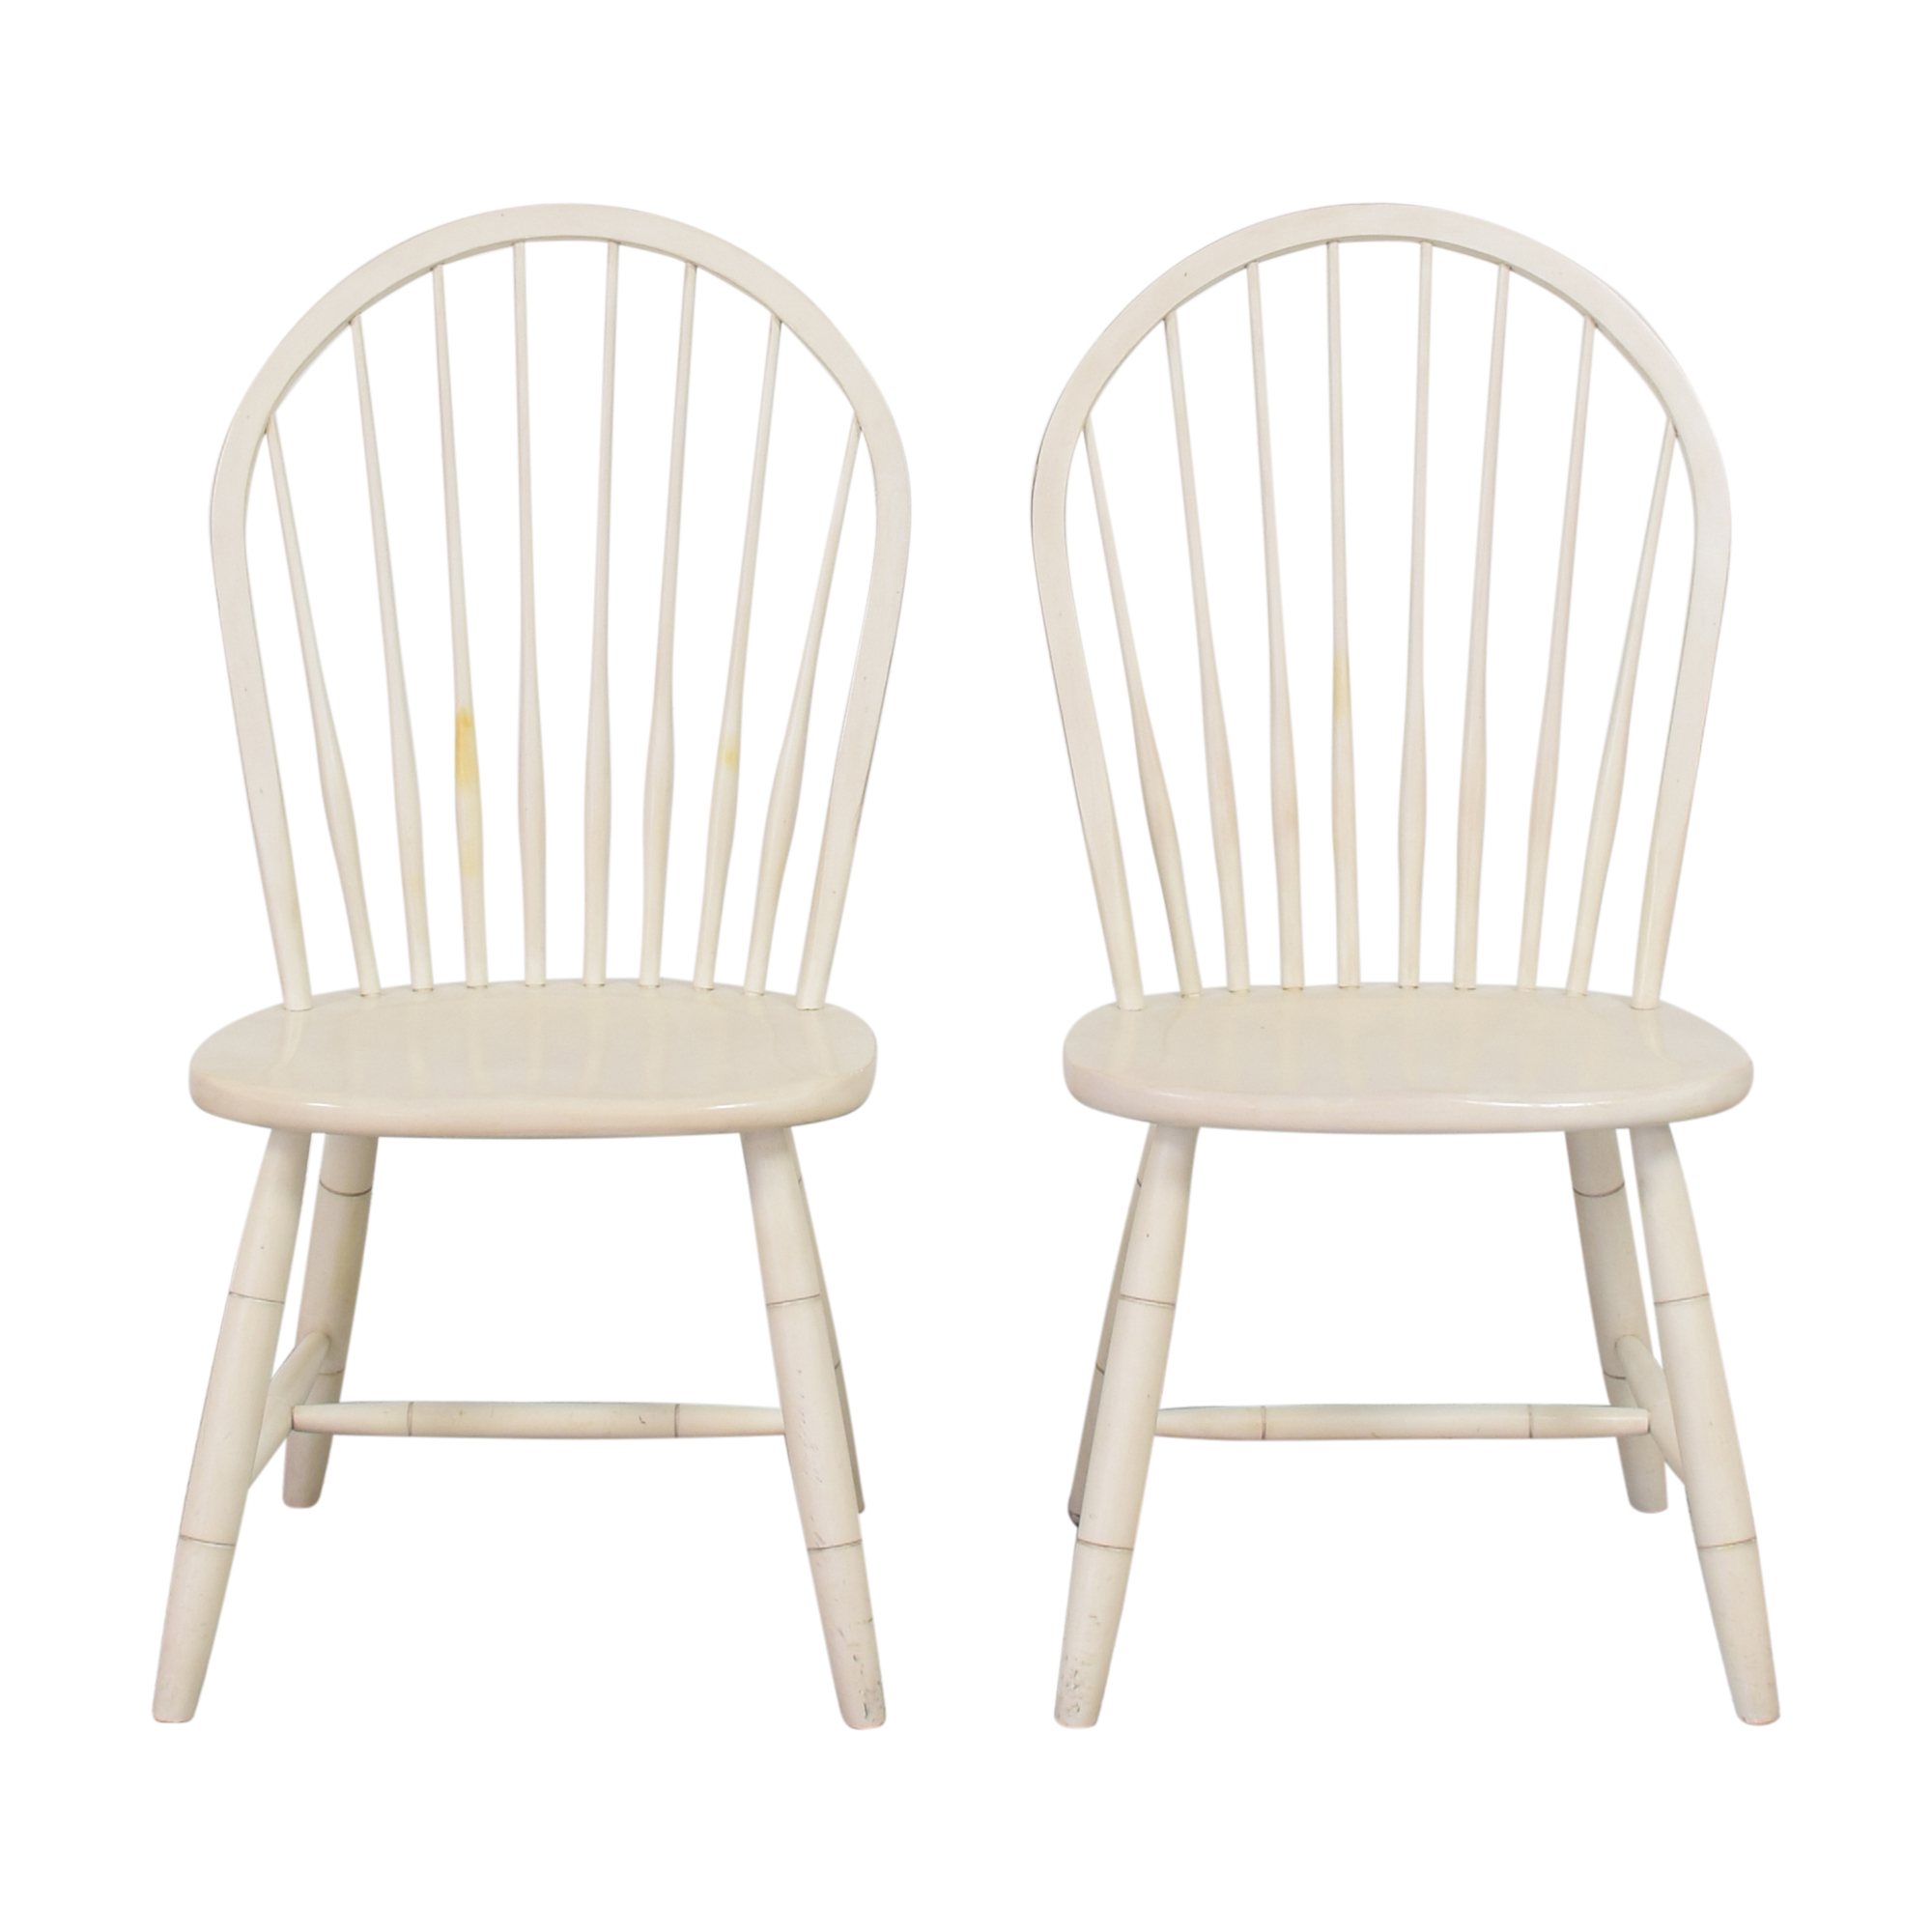 buy Ethan Allen Windsor Chairs Ethan Allen Dining Chairs